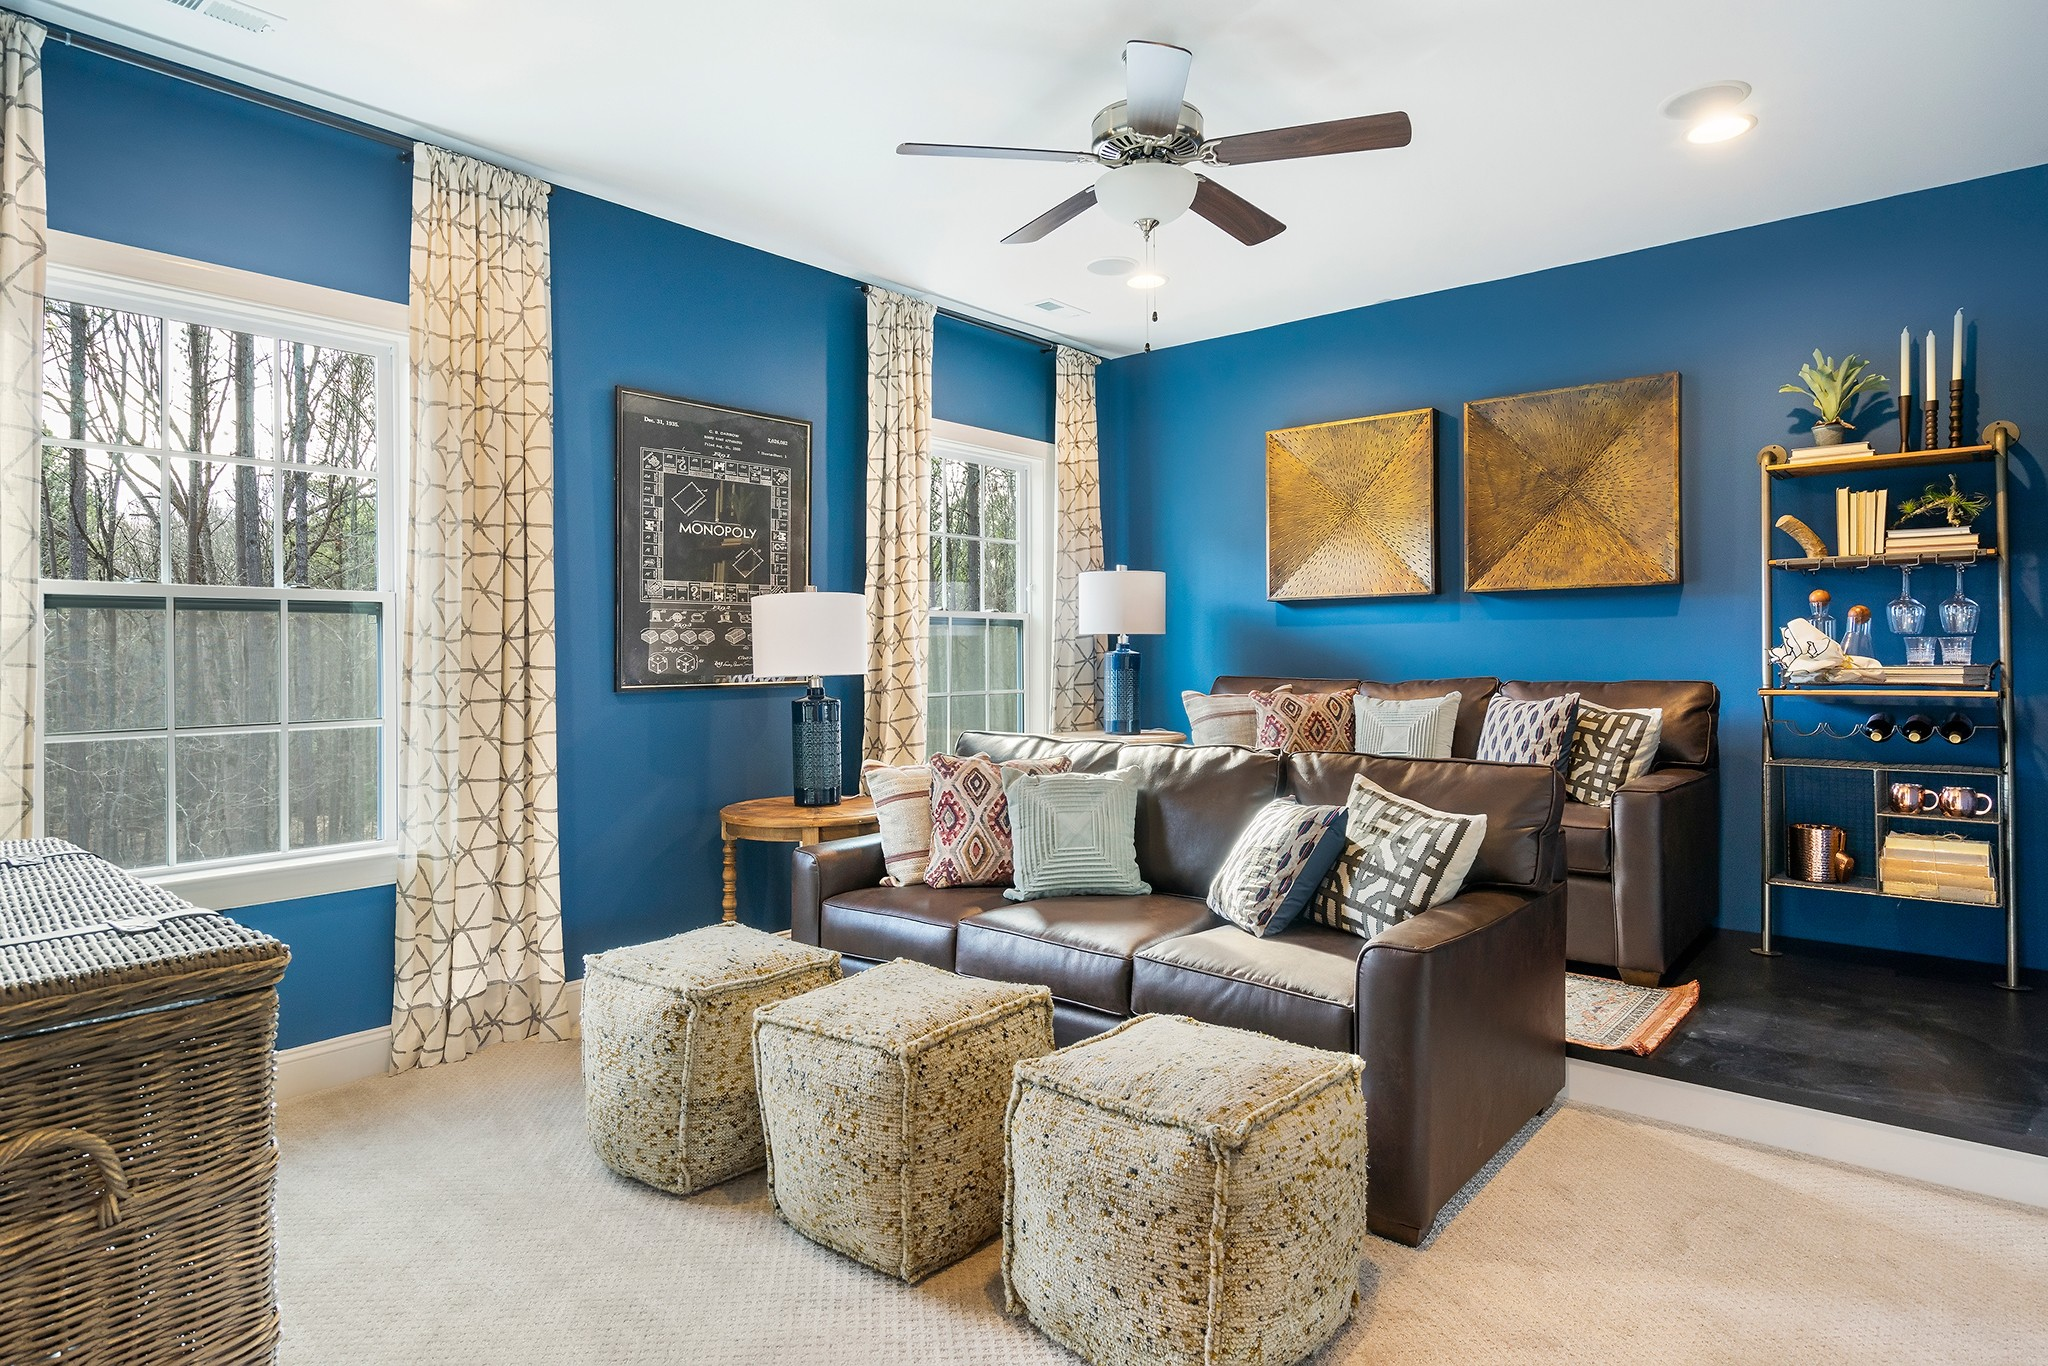 Ballentine Place, The Edenton Model, Royal Oaks a Division of Mattamy Homes, Rec Room